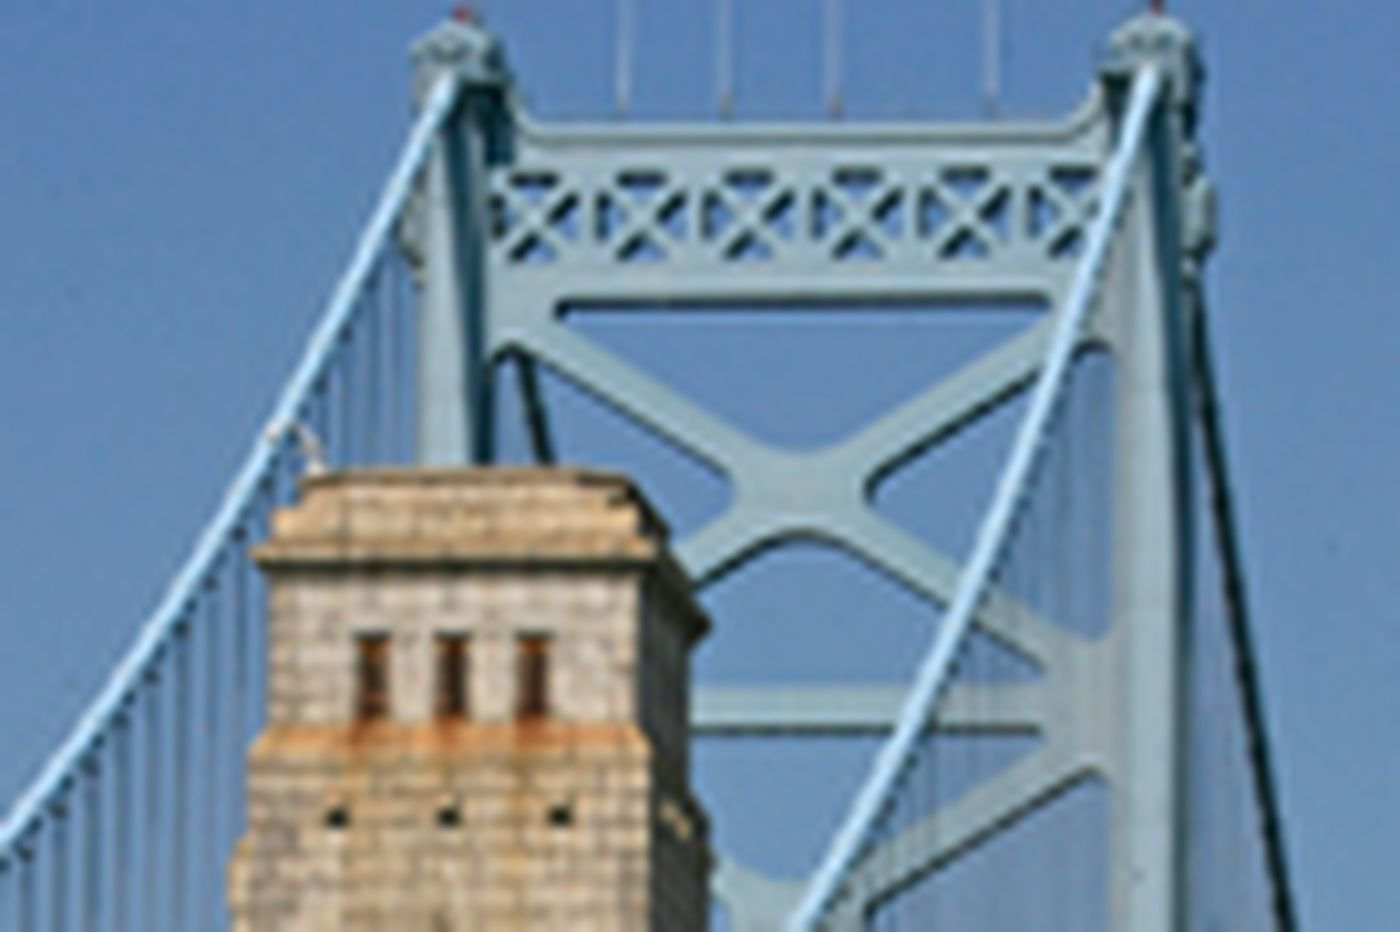 Pa. auditor general issues call for speedy DRPA reform